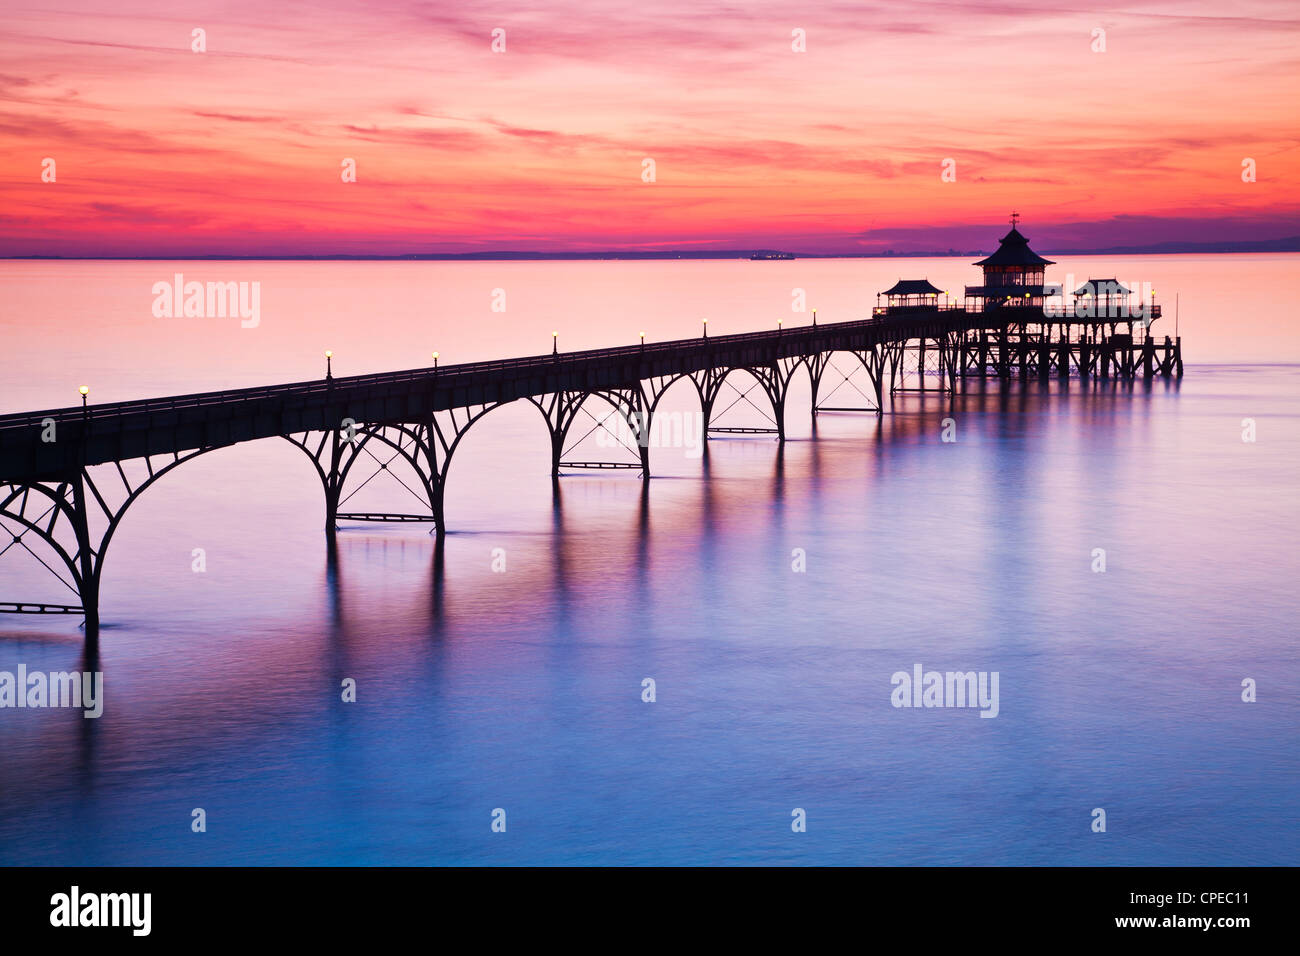 The sun sets over the Bristol Channel behind the Pier at Clevedon, Somerset, England, UK Stock Photo